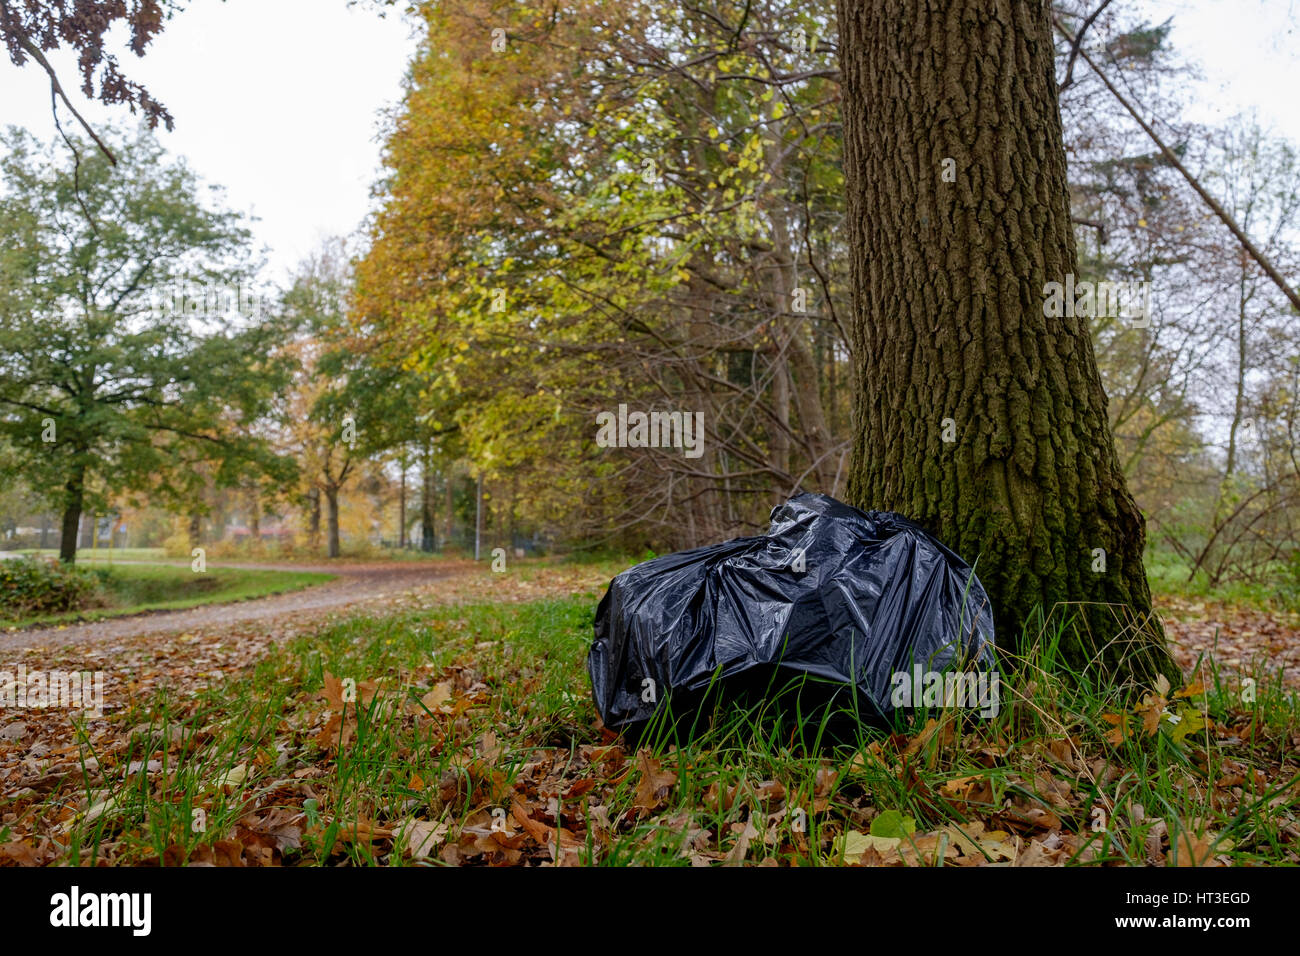 Illegal dumping in the nature garbage bag left in the nature - Stock Image